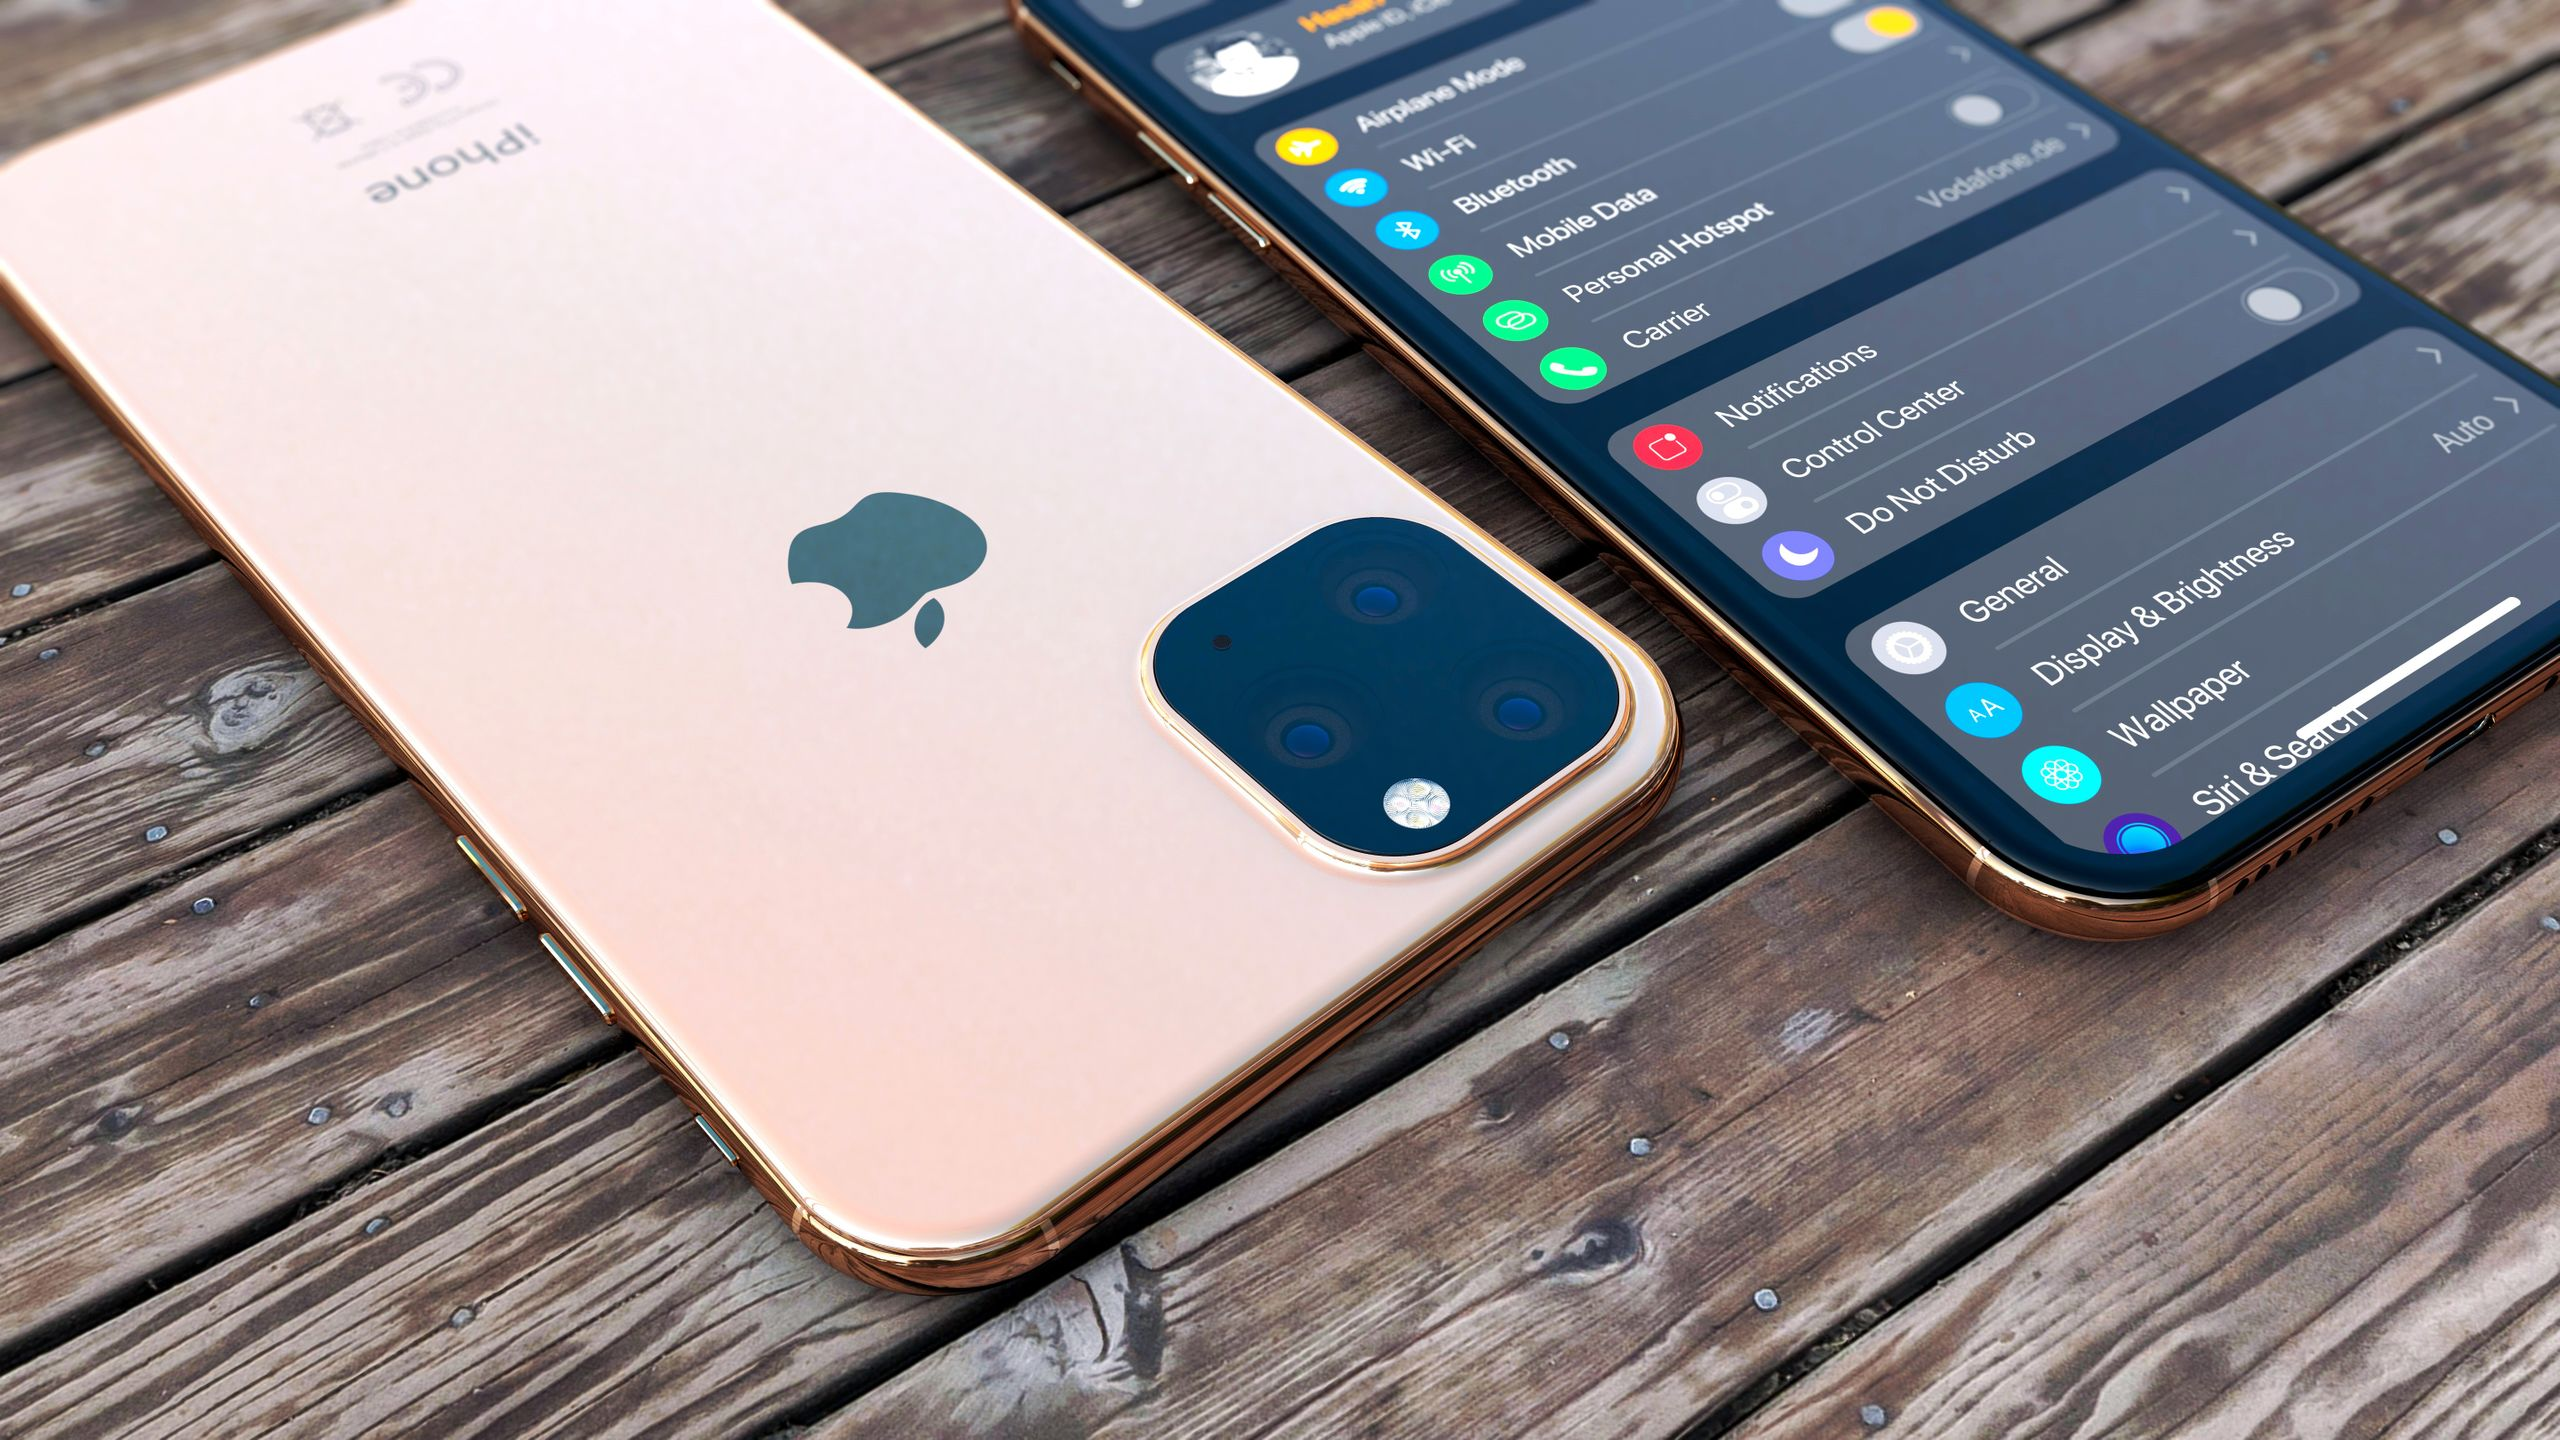 Iphone Xi Concept Images 2019 3